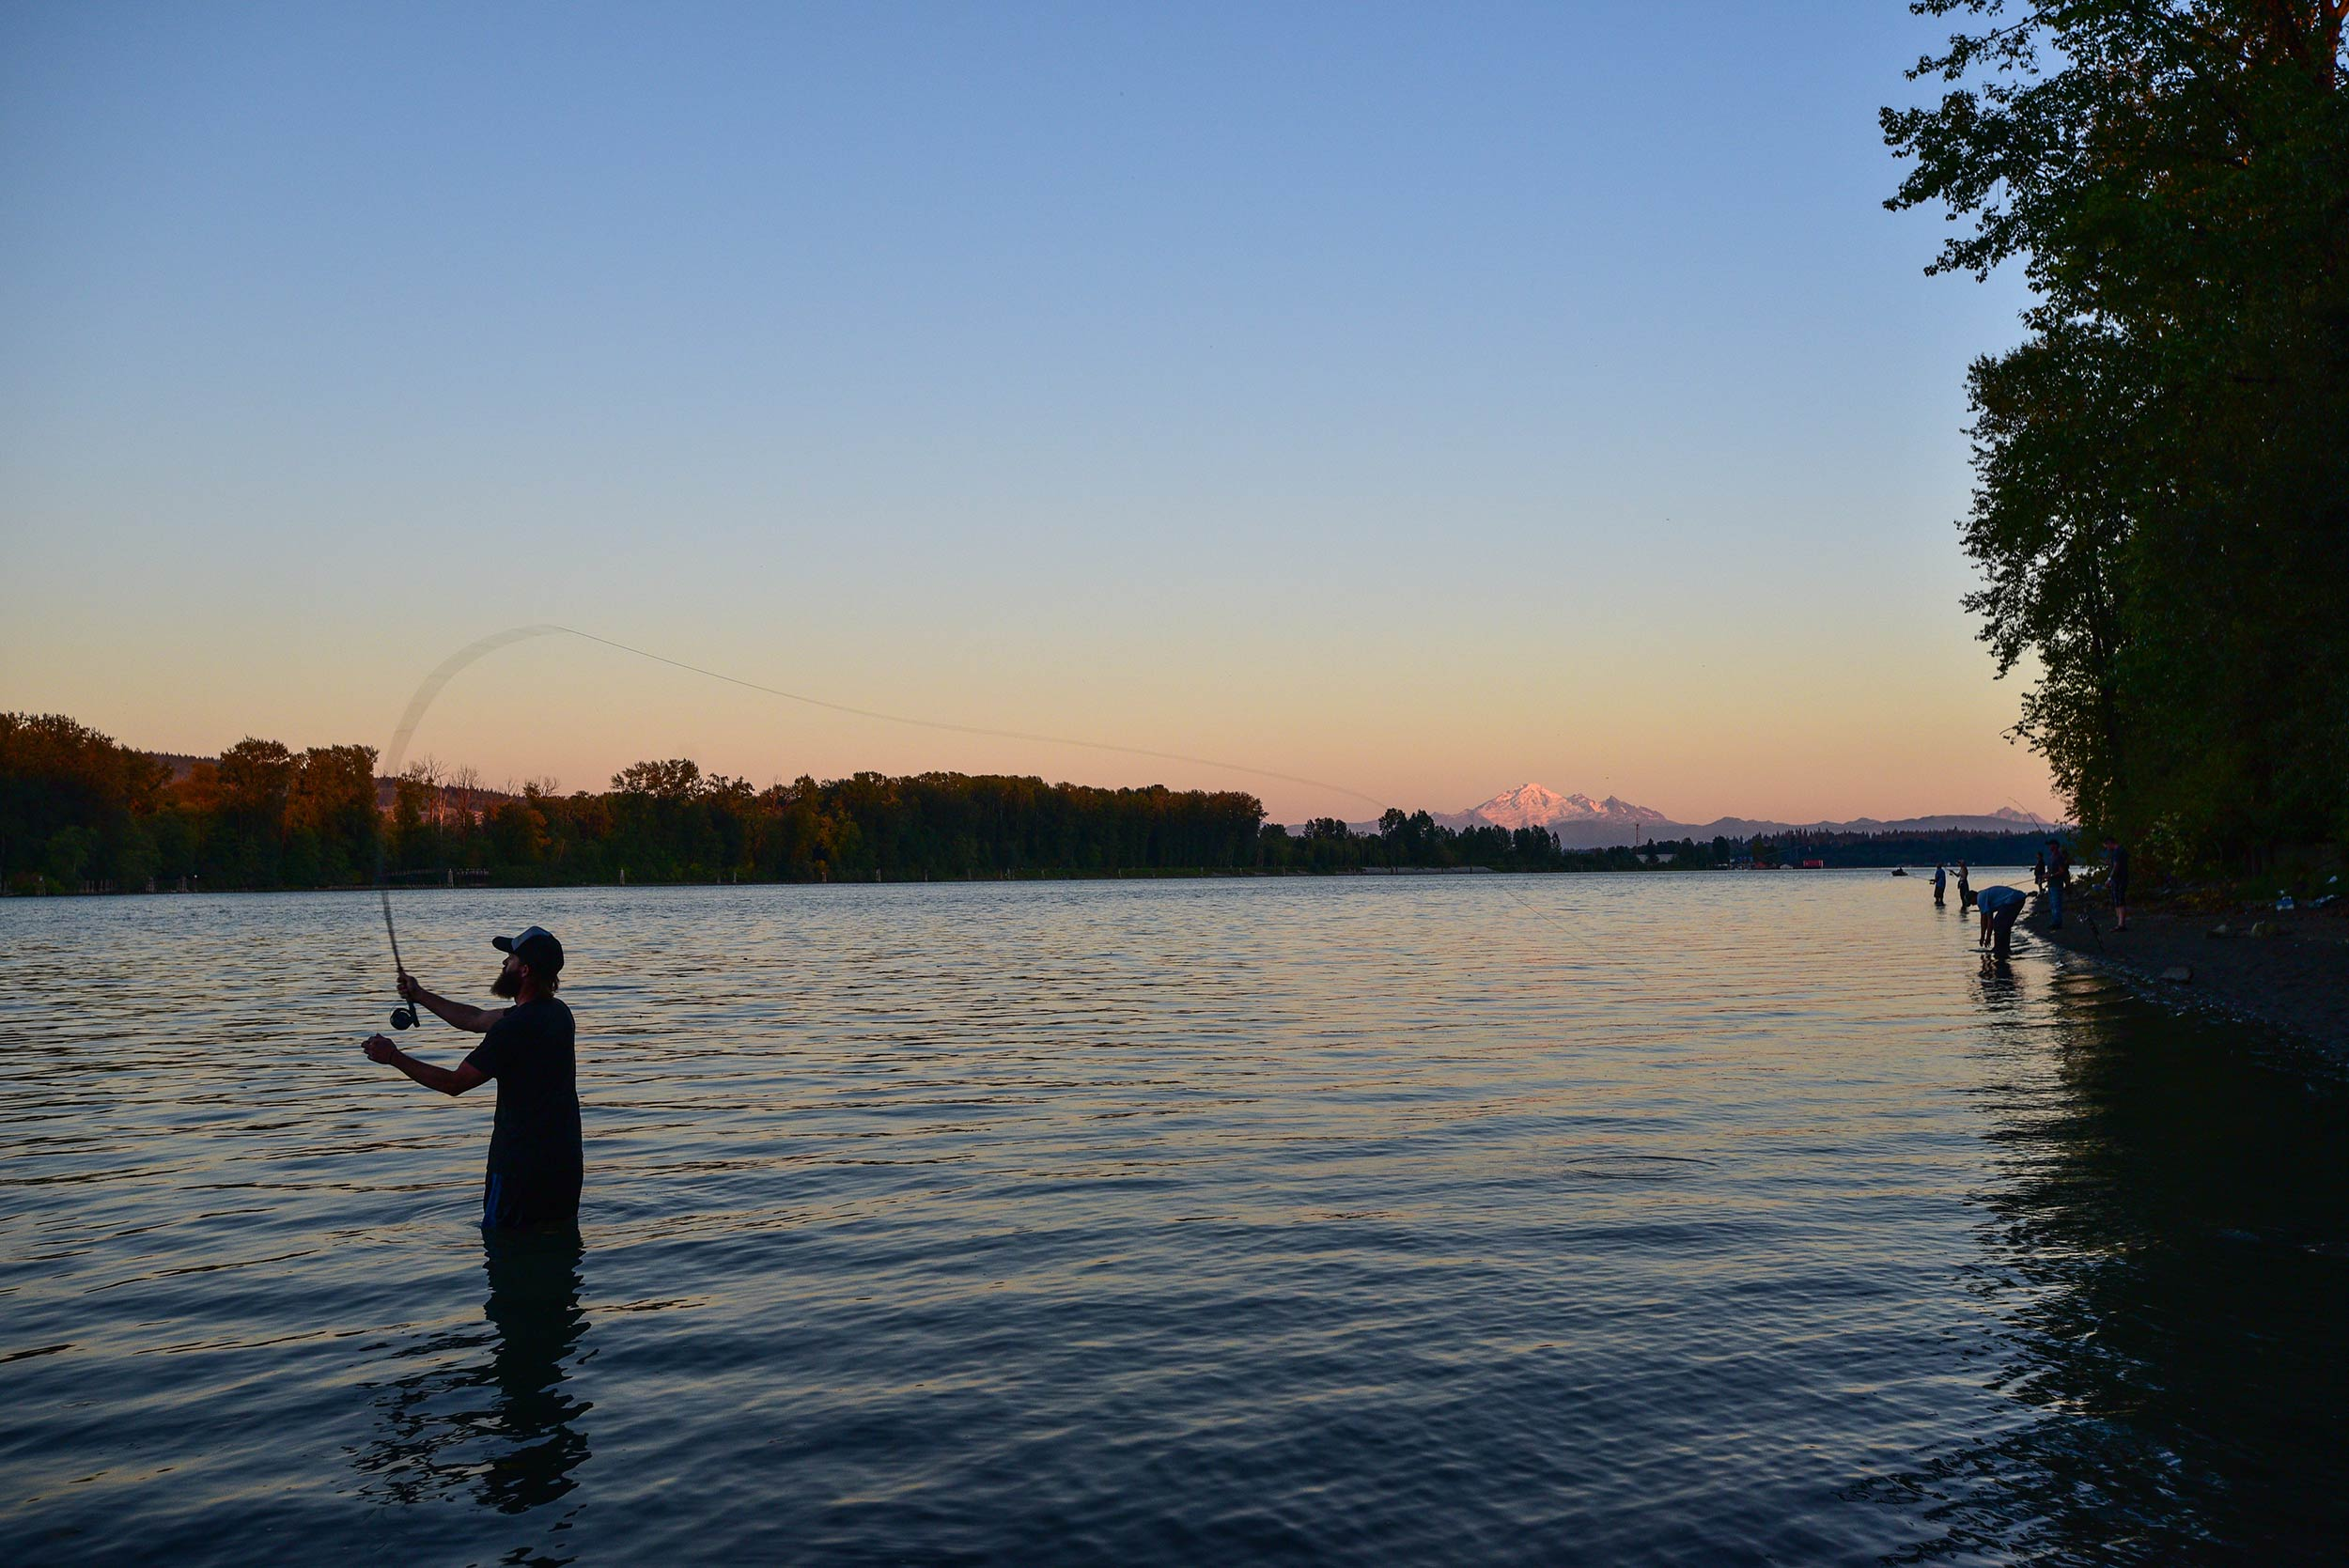 fraser_river_fly_fishing_mt_baker_sunset.jpg